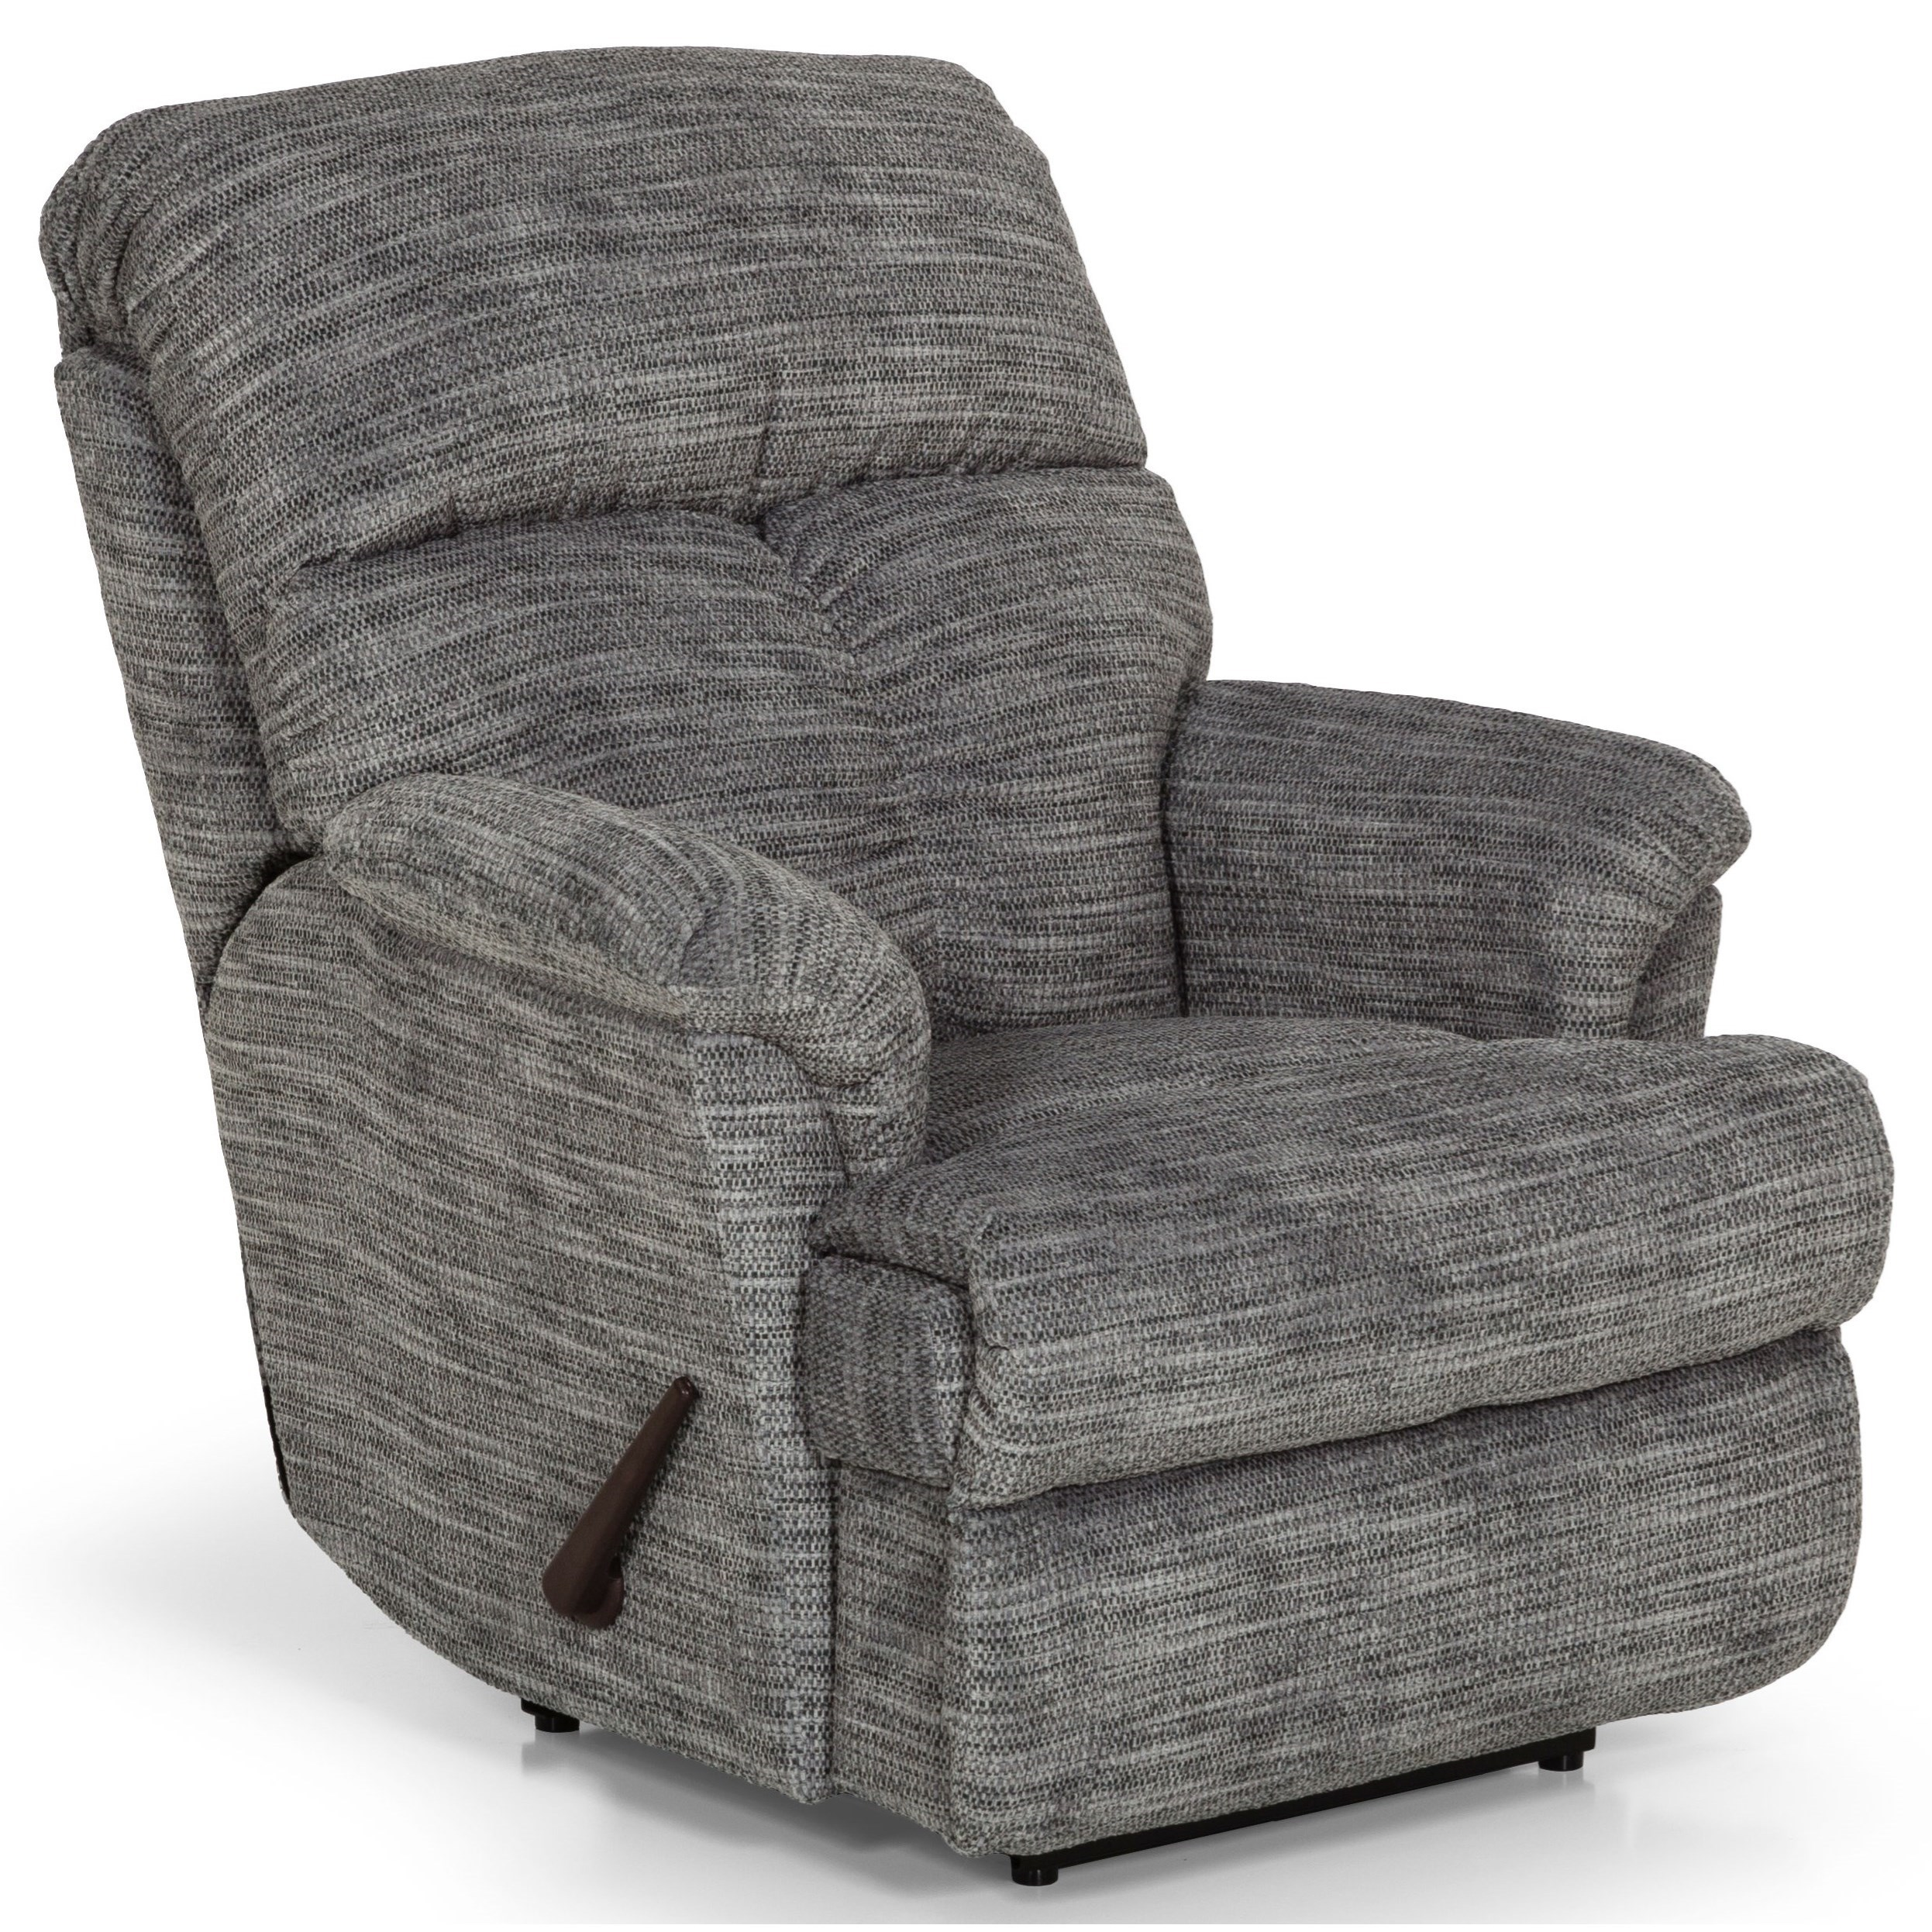 812 Power Rock Recliner w/ Pwr Headrest & Lumbar by Sunset Home at Sadler's Home Furnishings